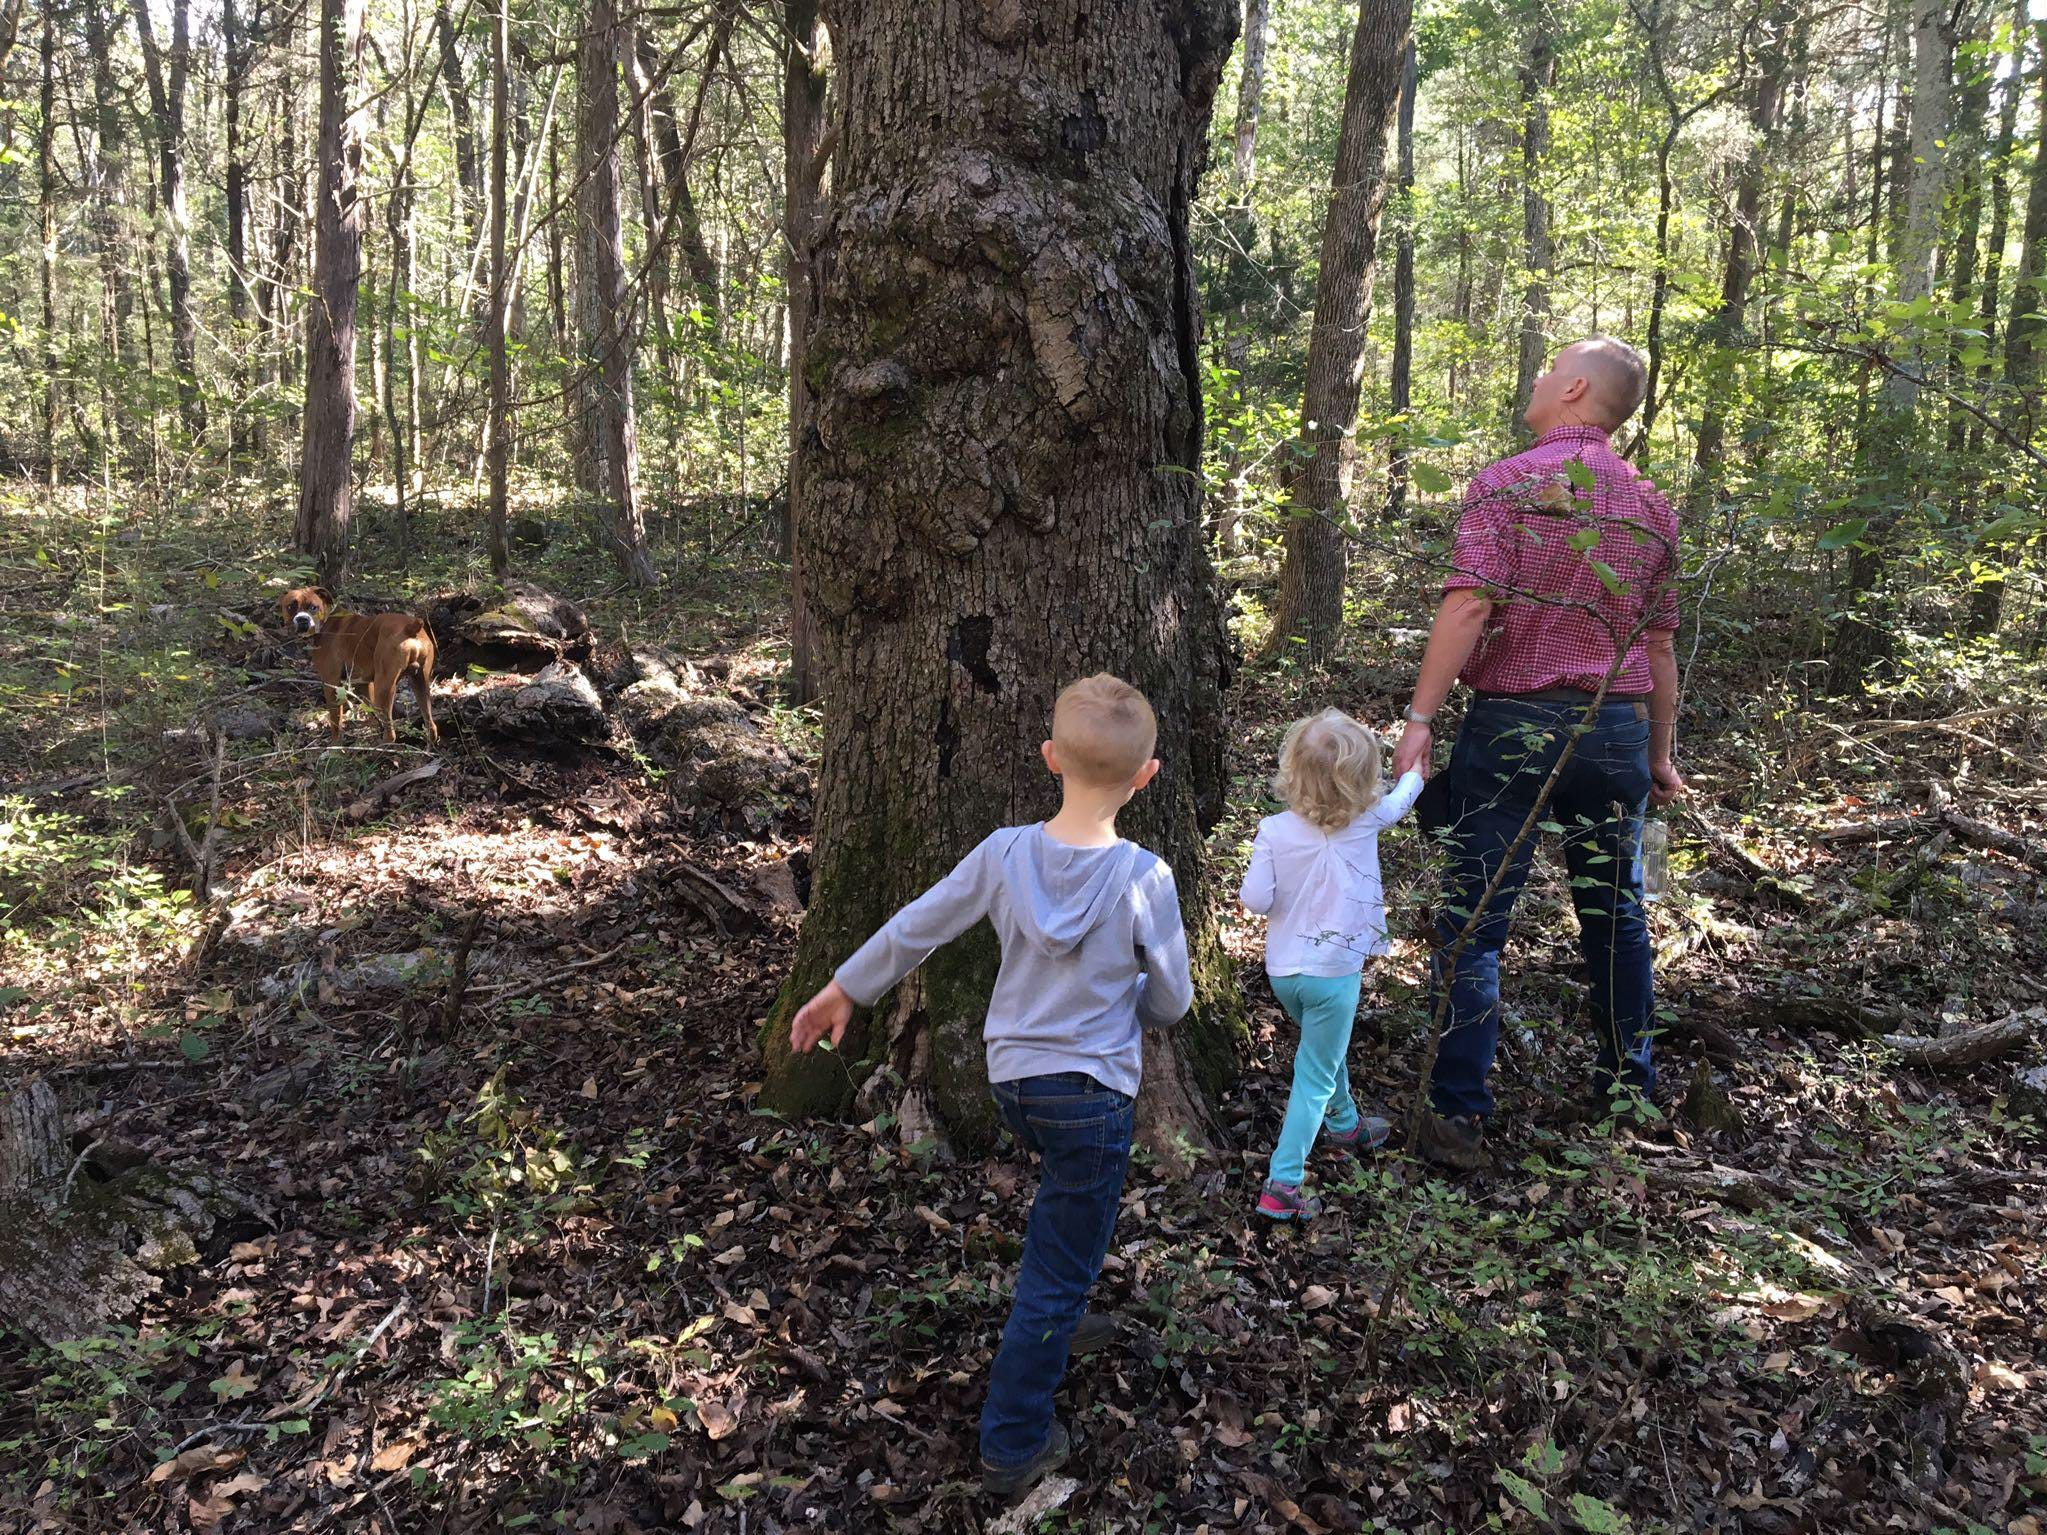 Steel Barrel brewmaster Derrick Morse takes his two children exploring on the nature trail located on the 83-acre Hop Springs property.